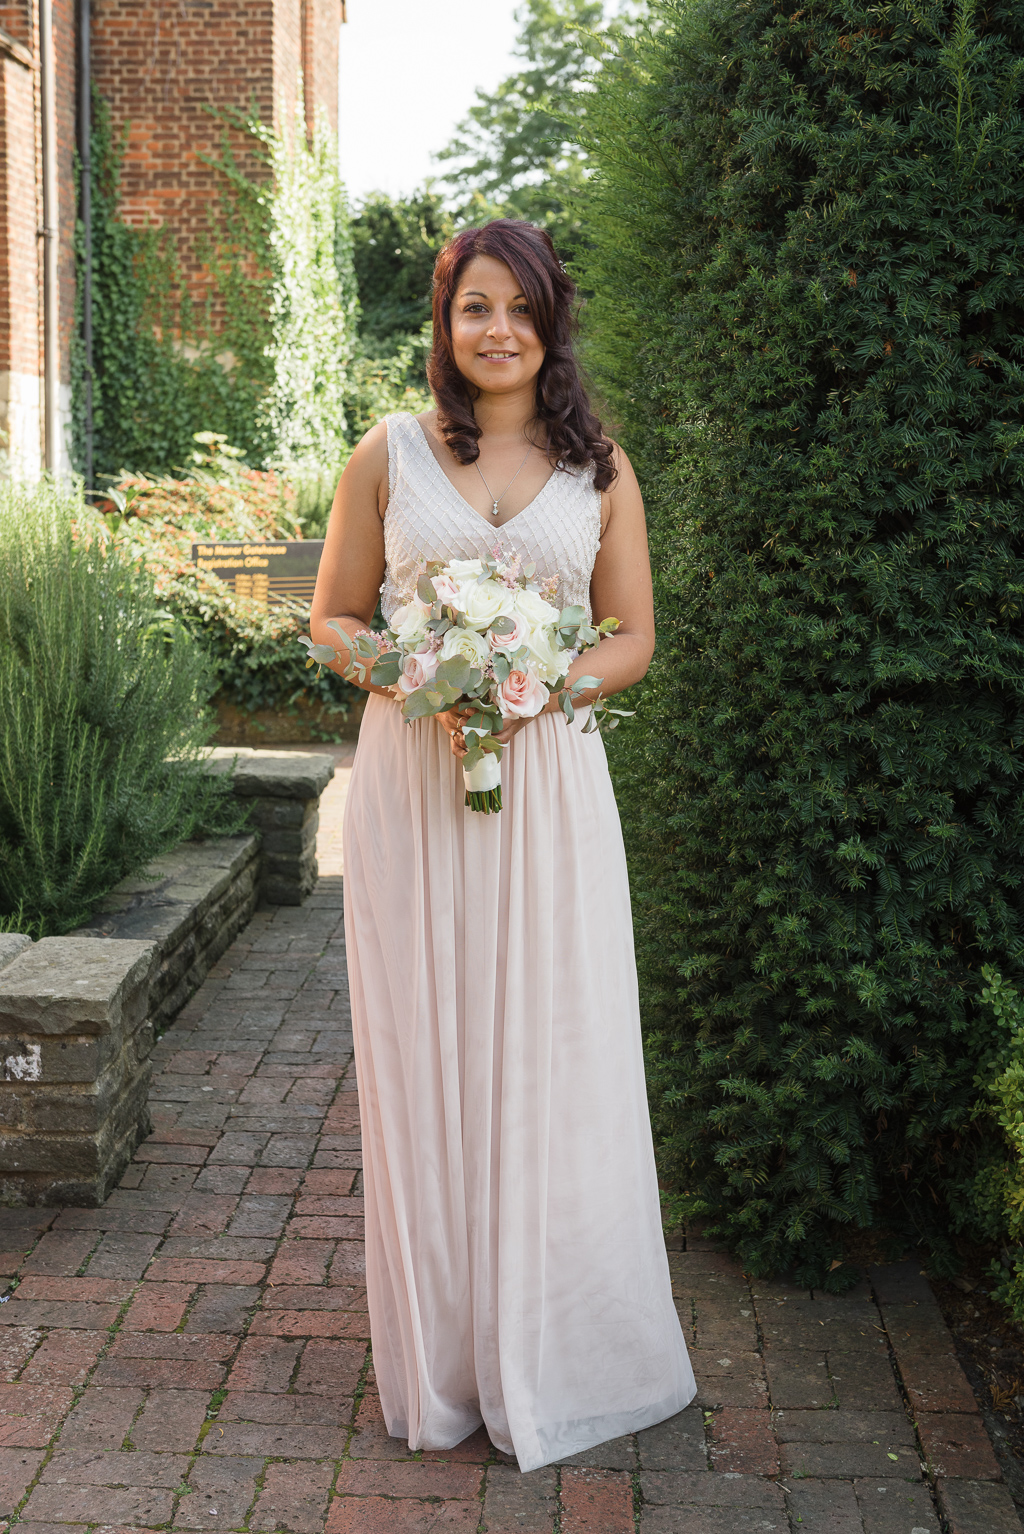 Bride Portrait atThe Manor Gatehouse Dartford | Kent Wedding Photographers | Oakhouse Photography